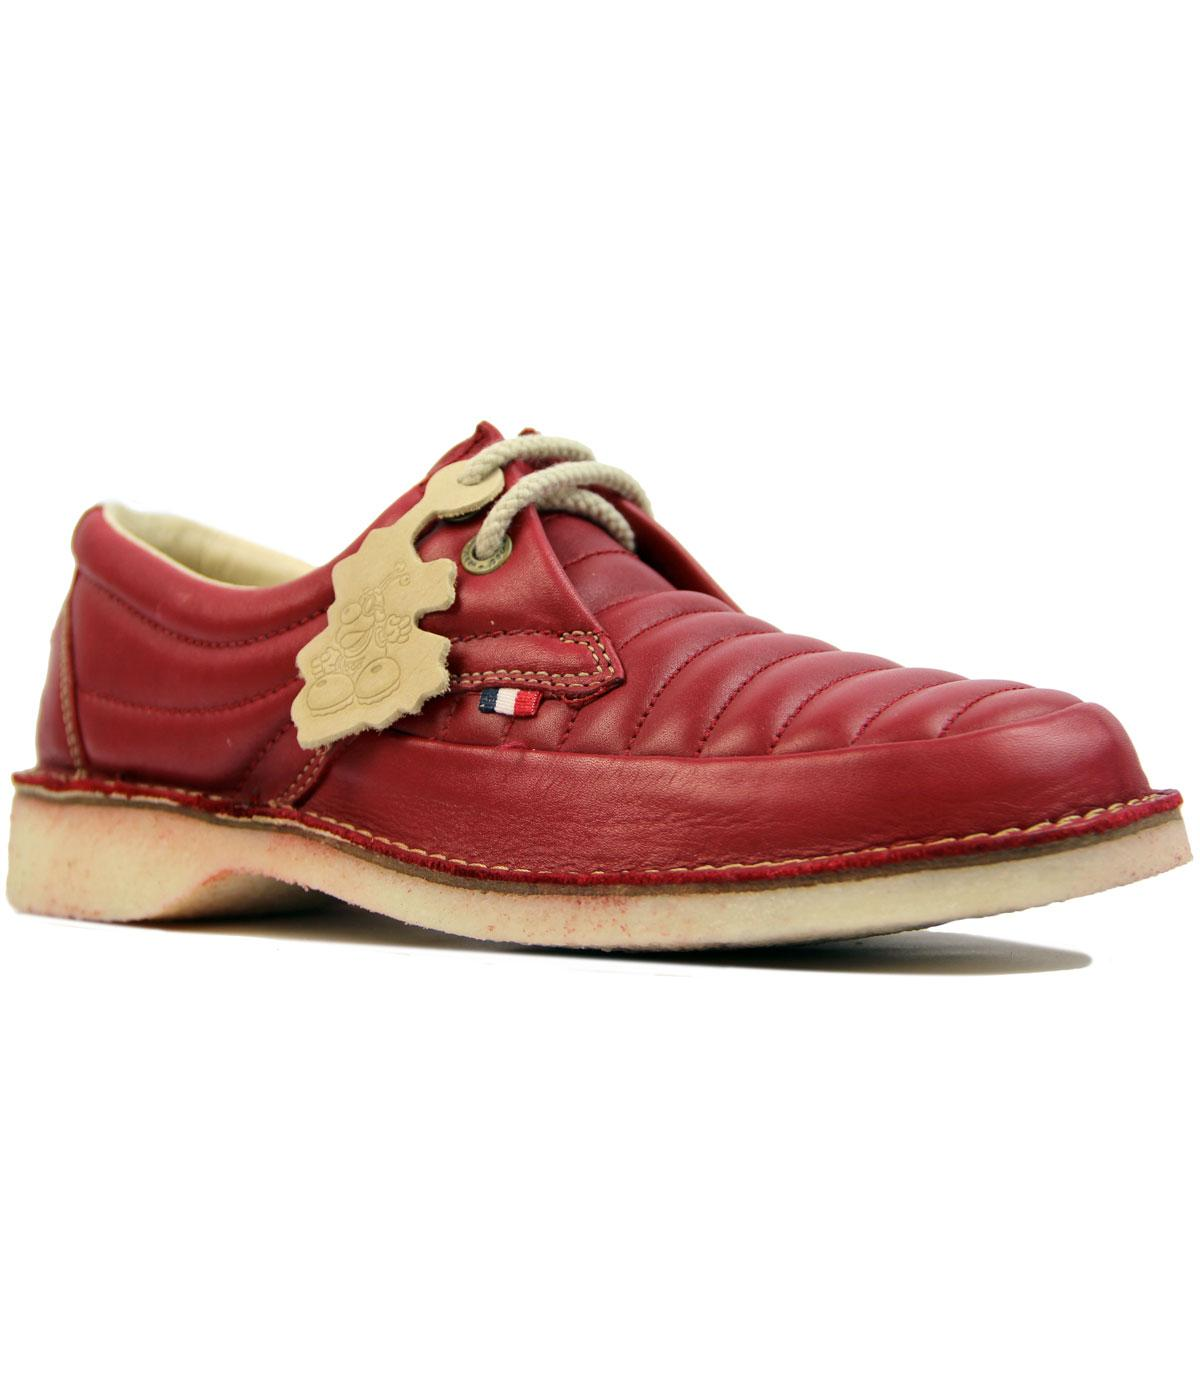 Jagger POD Retro 1970s Quilted Front Casuals Shoes